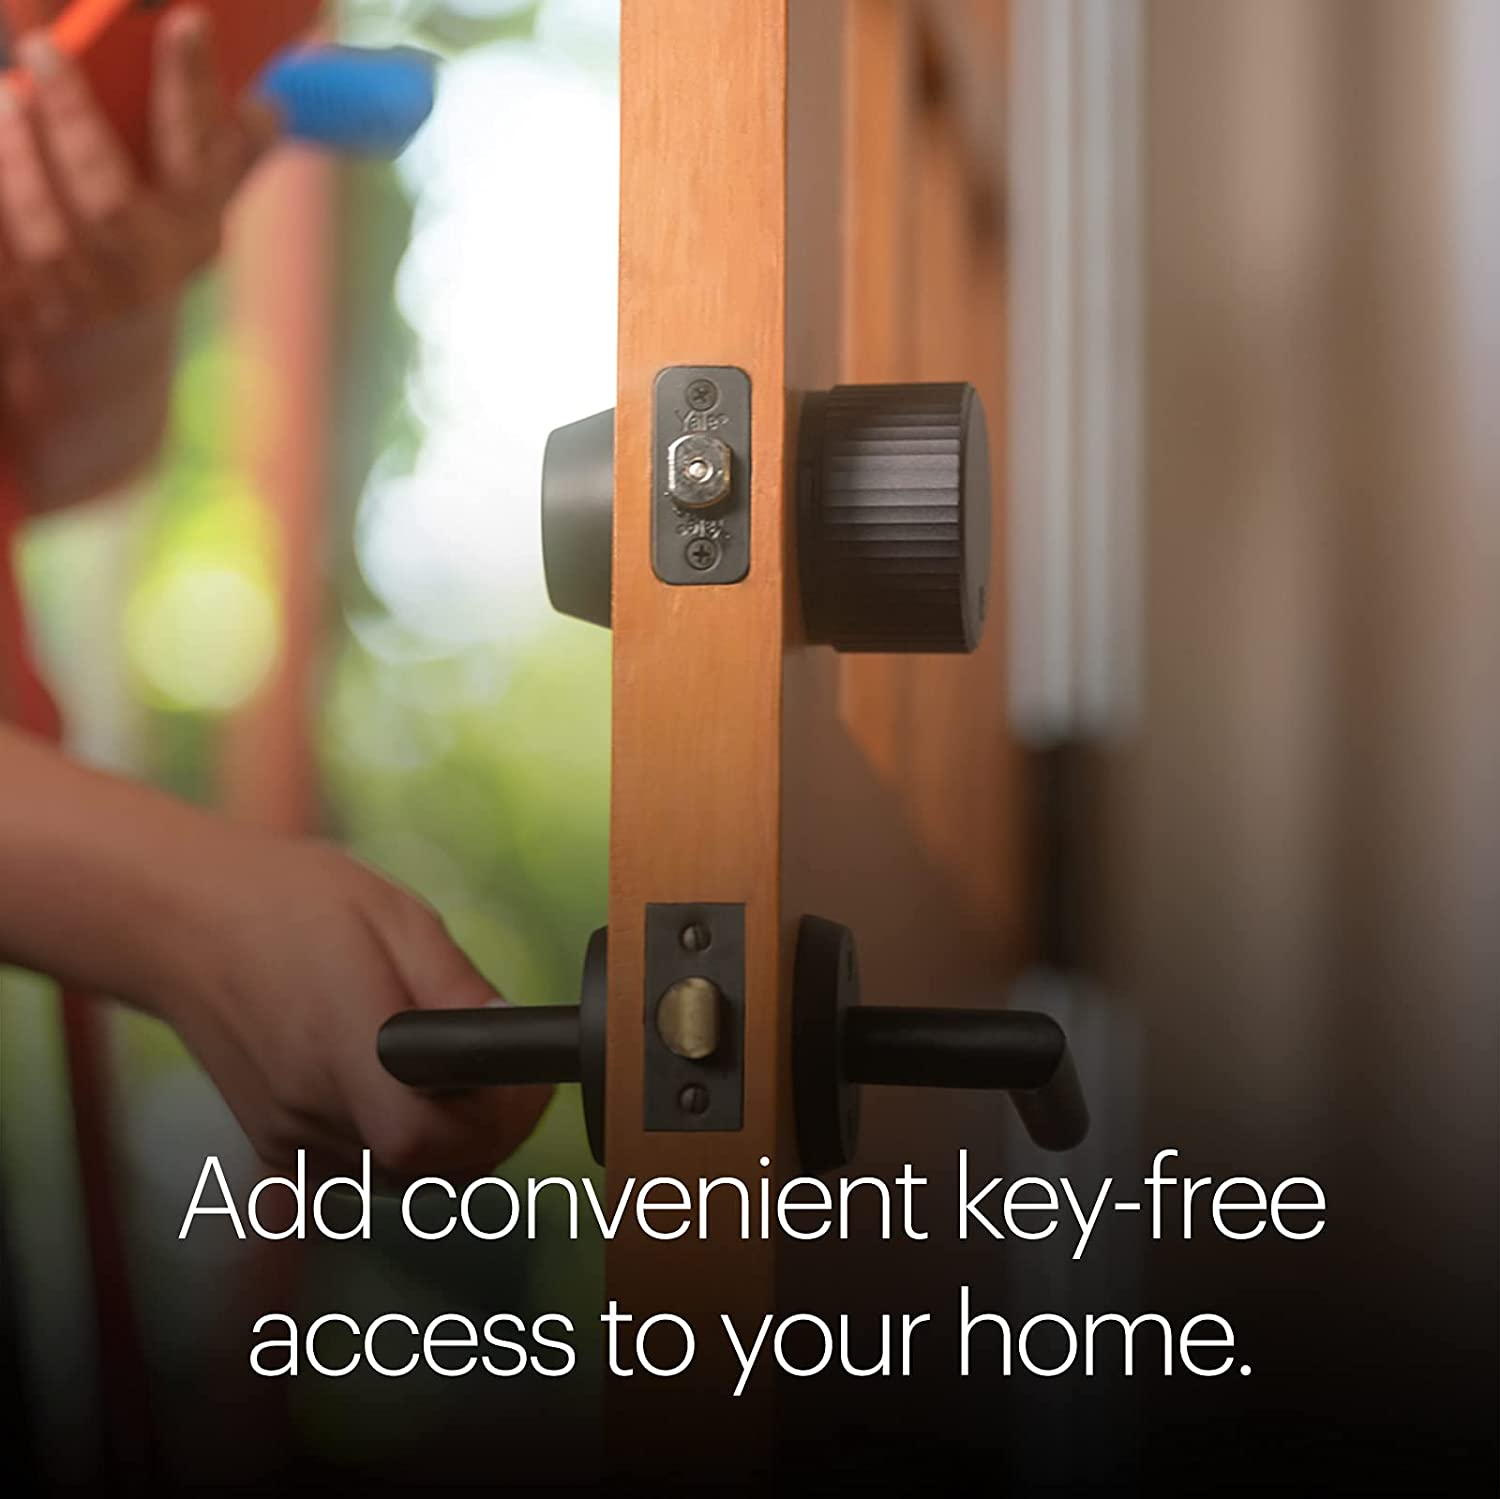 August Wi-Fi 4th Generation Smart Lock Fits Your Existing Deadbolt in Minutes Matte Black